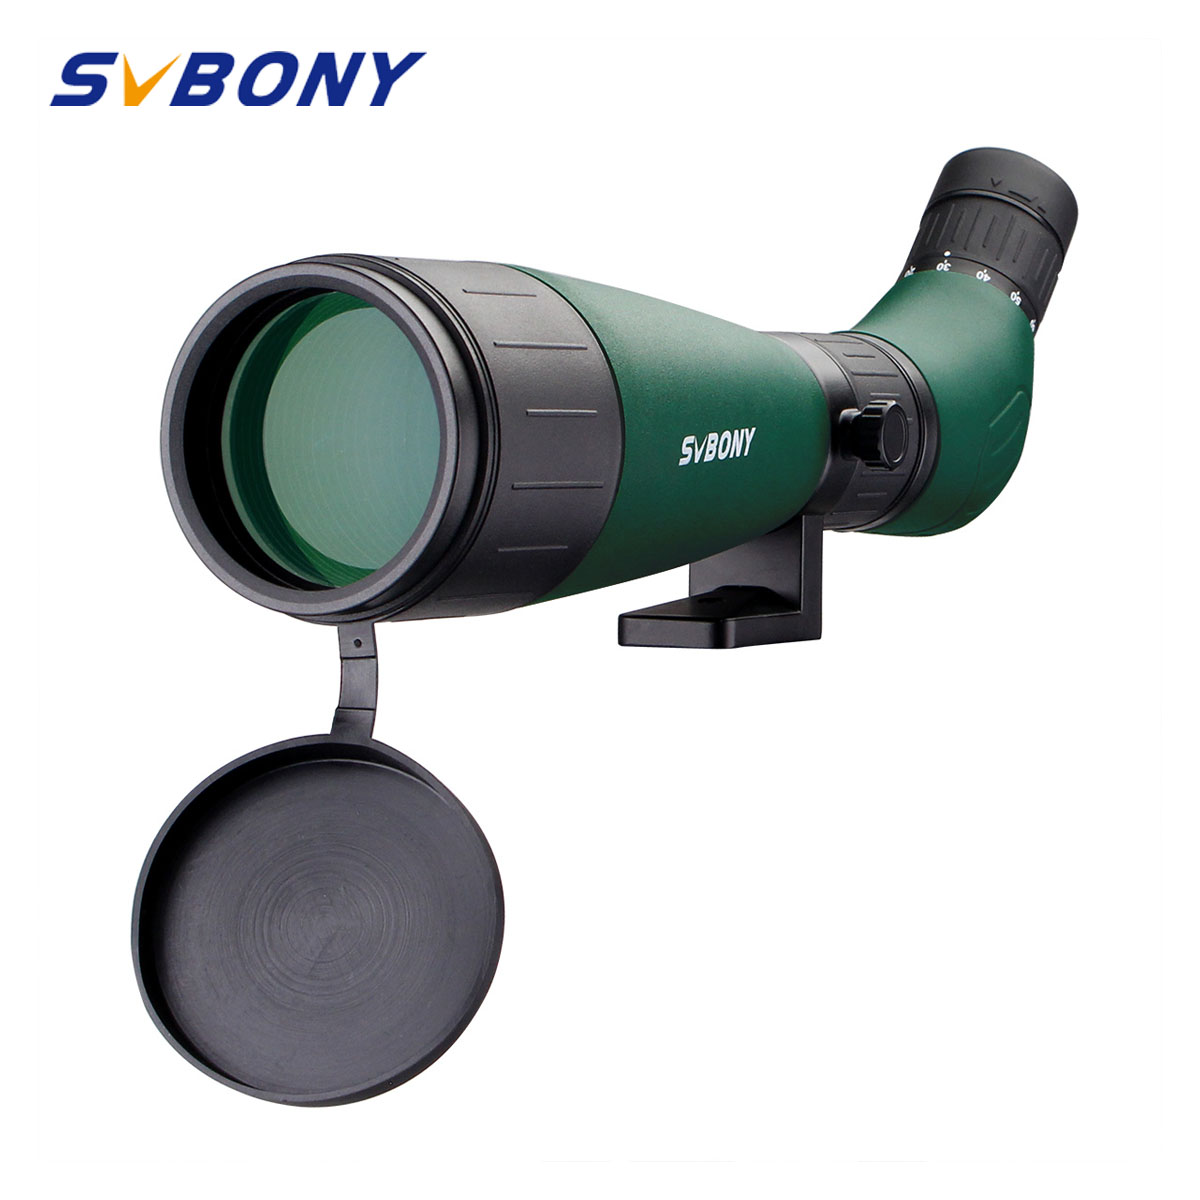 SVBONY SV18 Spotting Scope 20-60x60 Telescope  Birdwatching Archery Fully Coated Compact with Phone Adapter F9327SVBONY SV18 Spotting Scope 20-60x60 Telescope  Birdwatching Archery Fully Coated Compact with Phone Adapter F9327